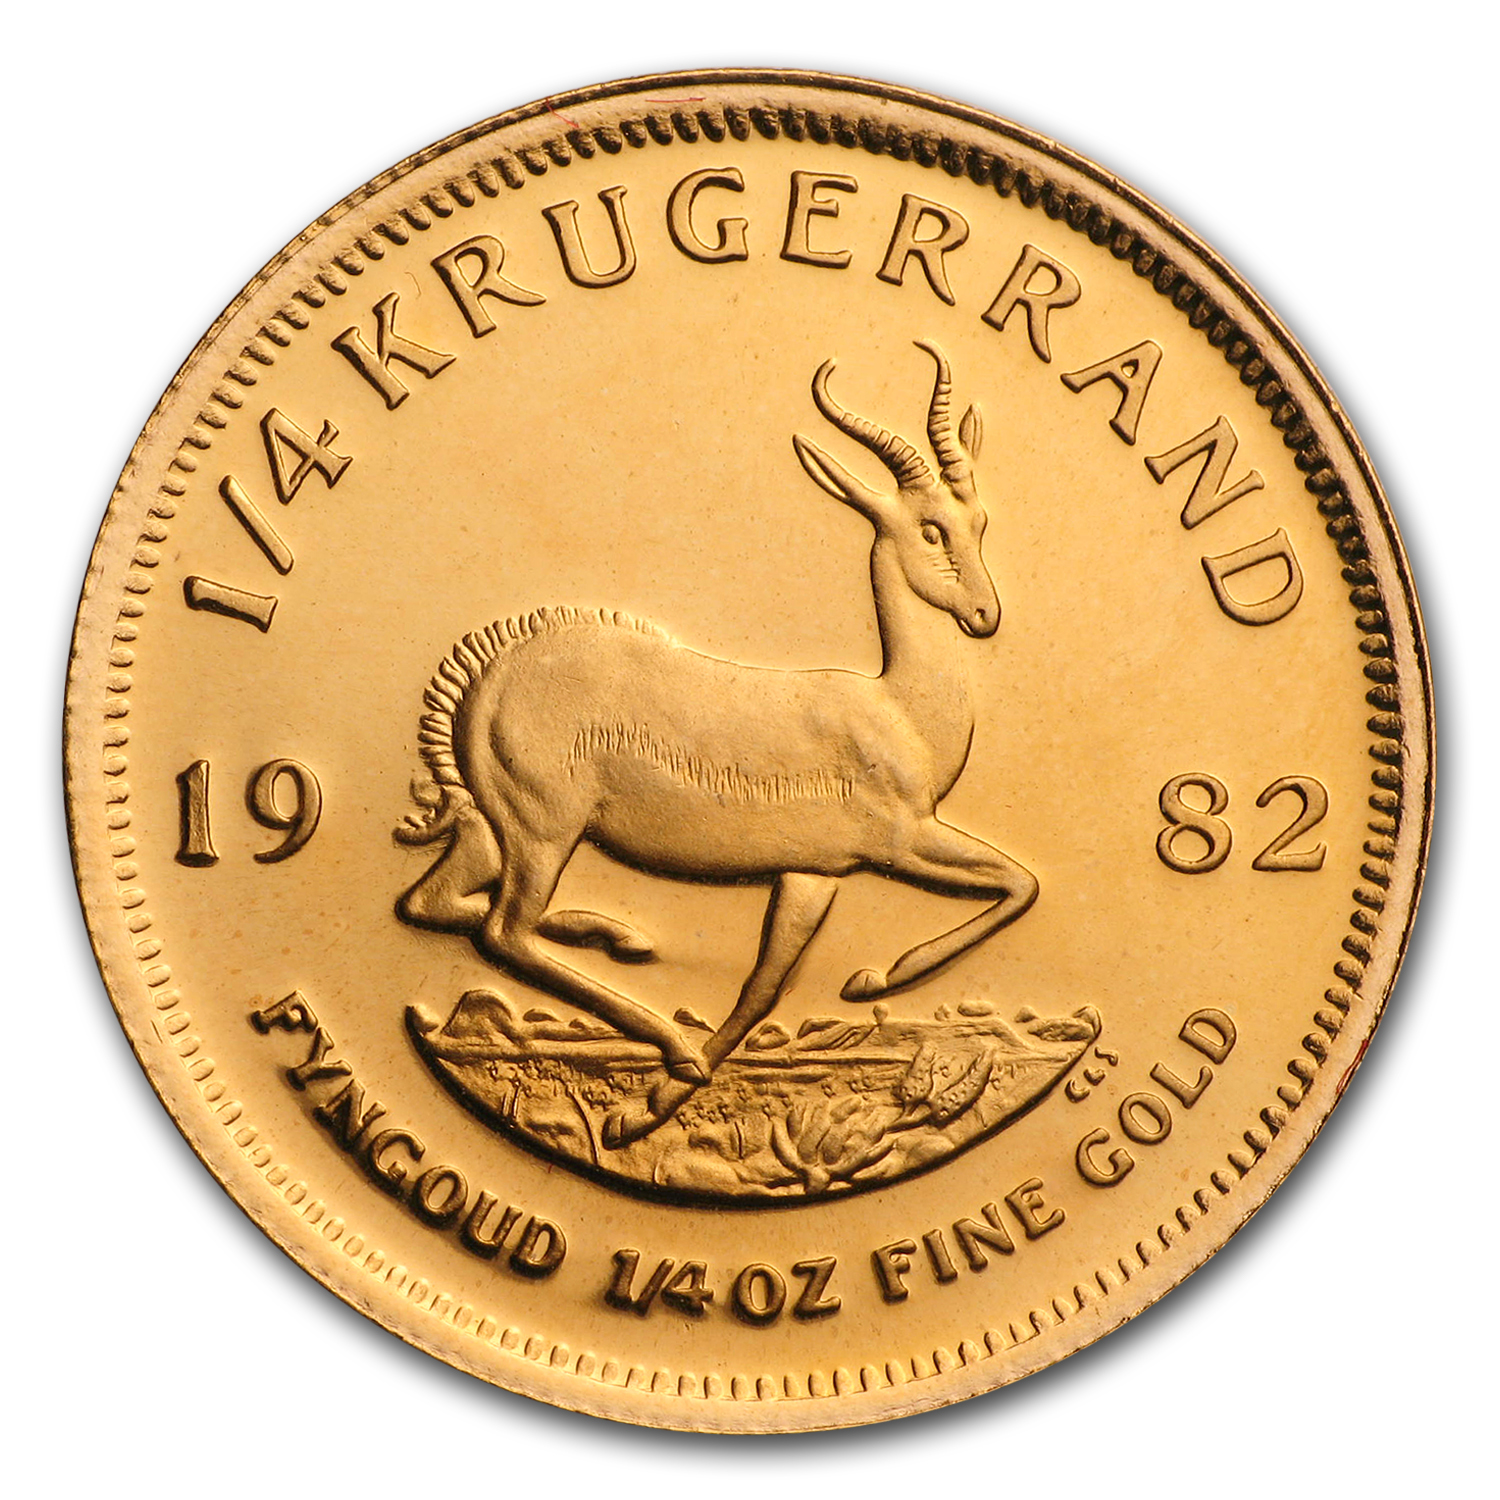 1982 1/4 oz Gold South African Krugerrand (Proof)